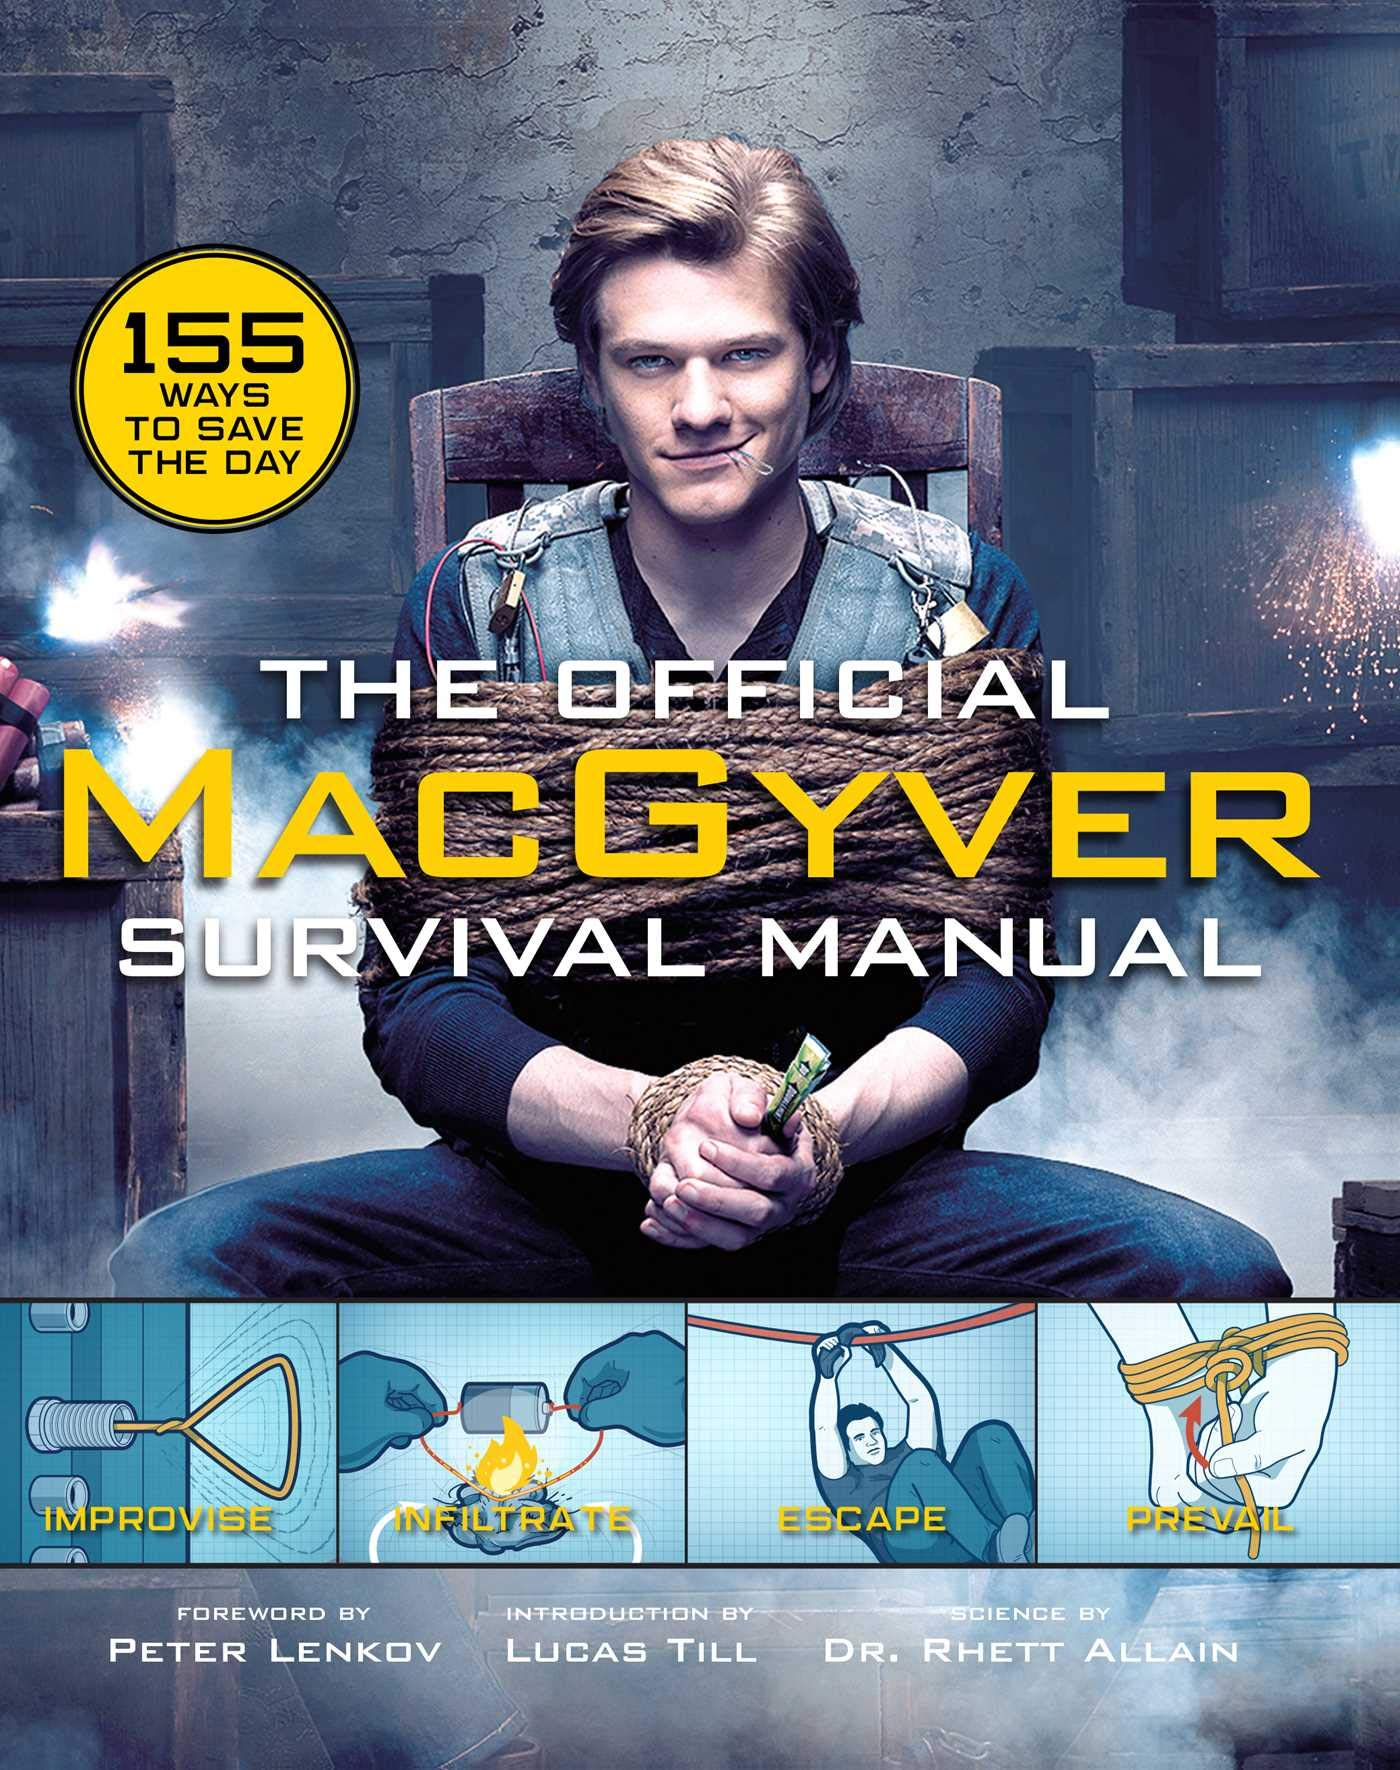 The Official MacGyver Survival Manual: 155 Ways to Save the Day by Weldon Owen